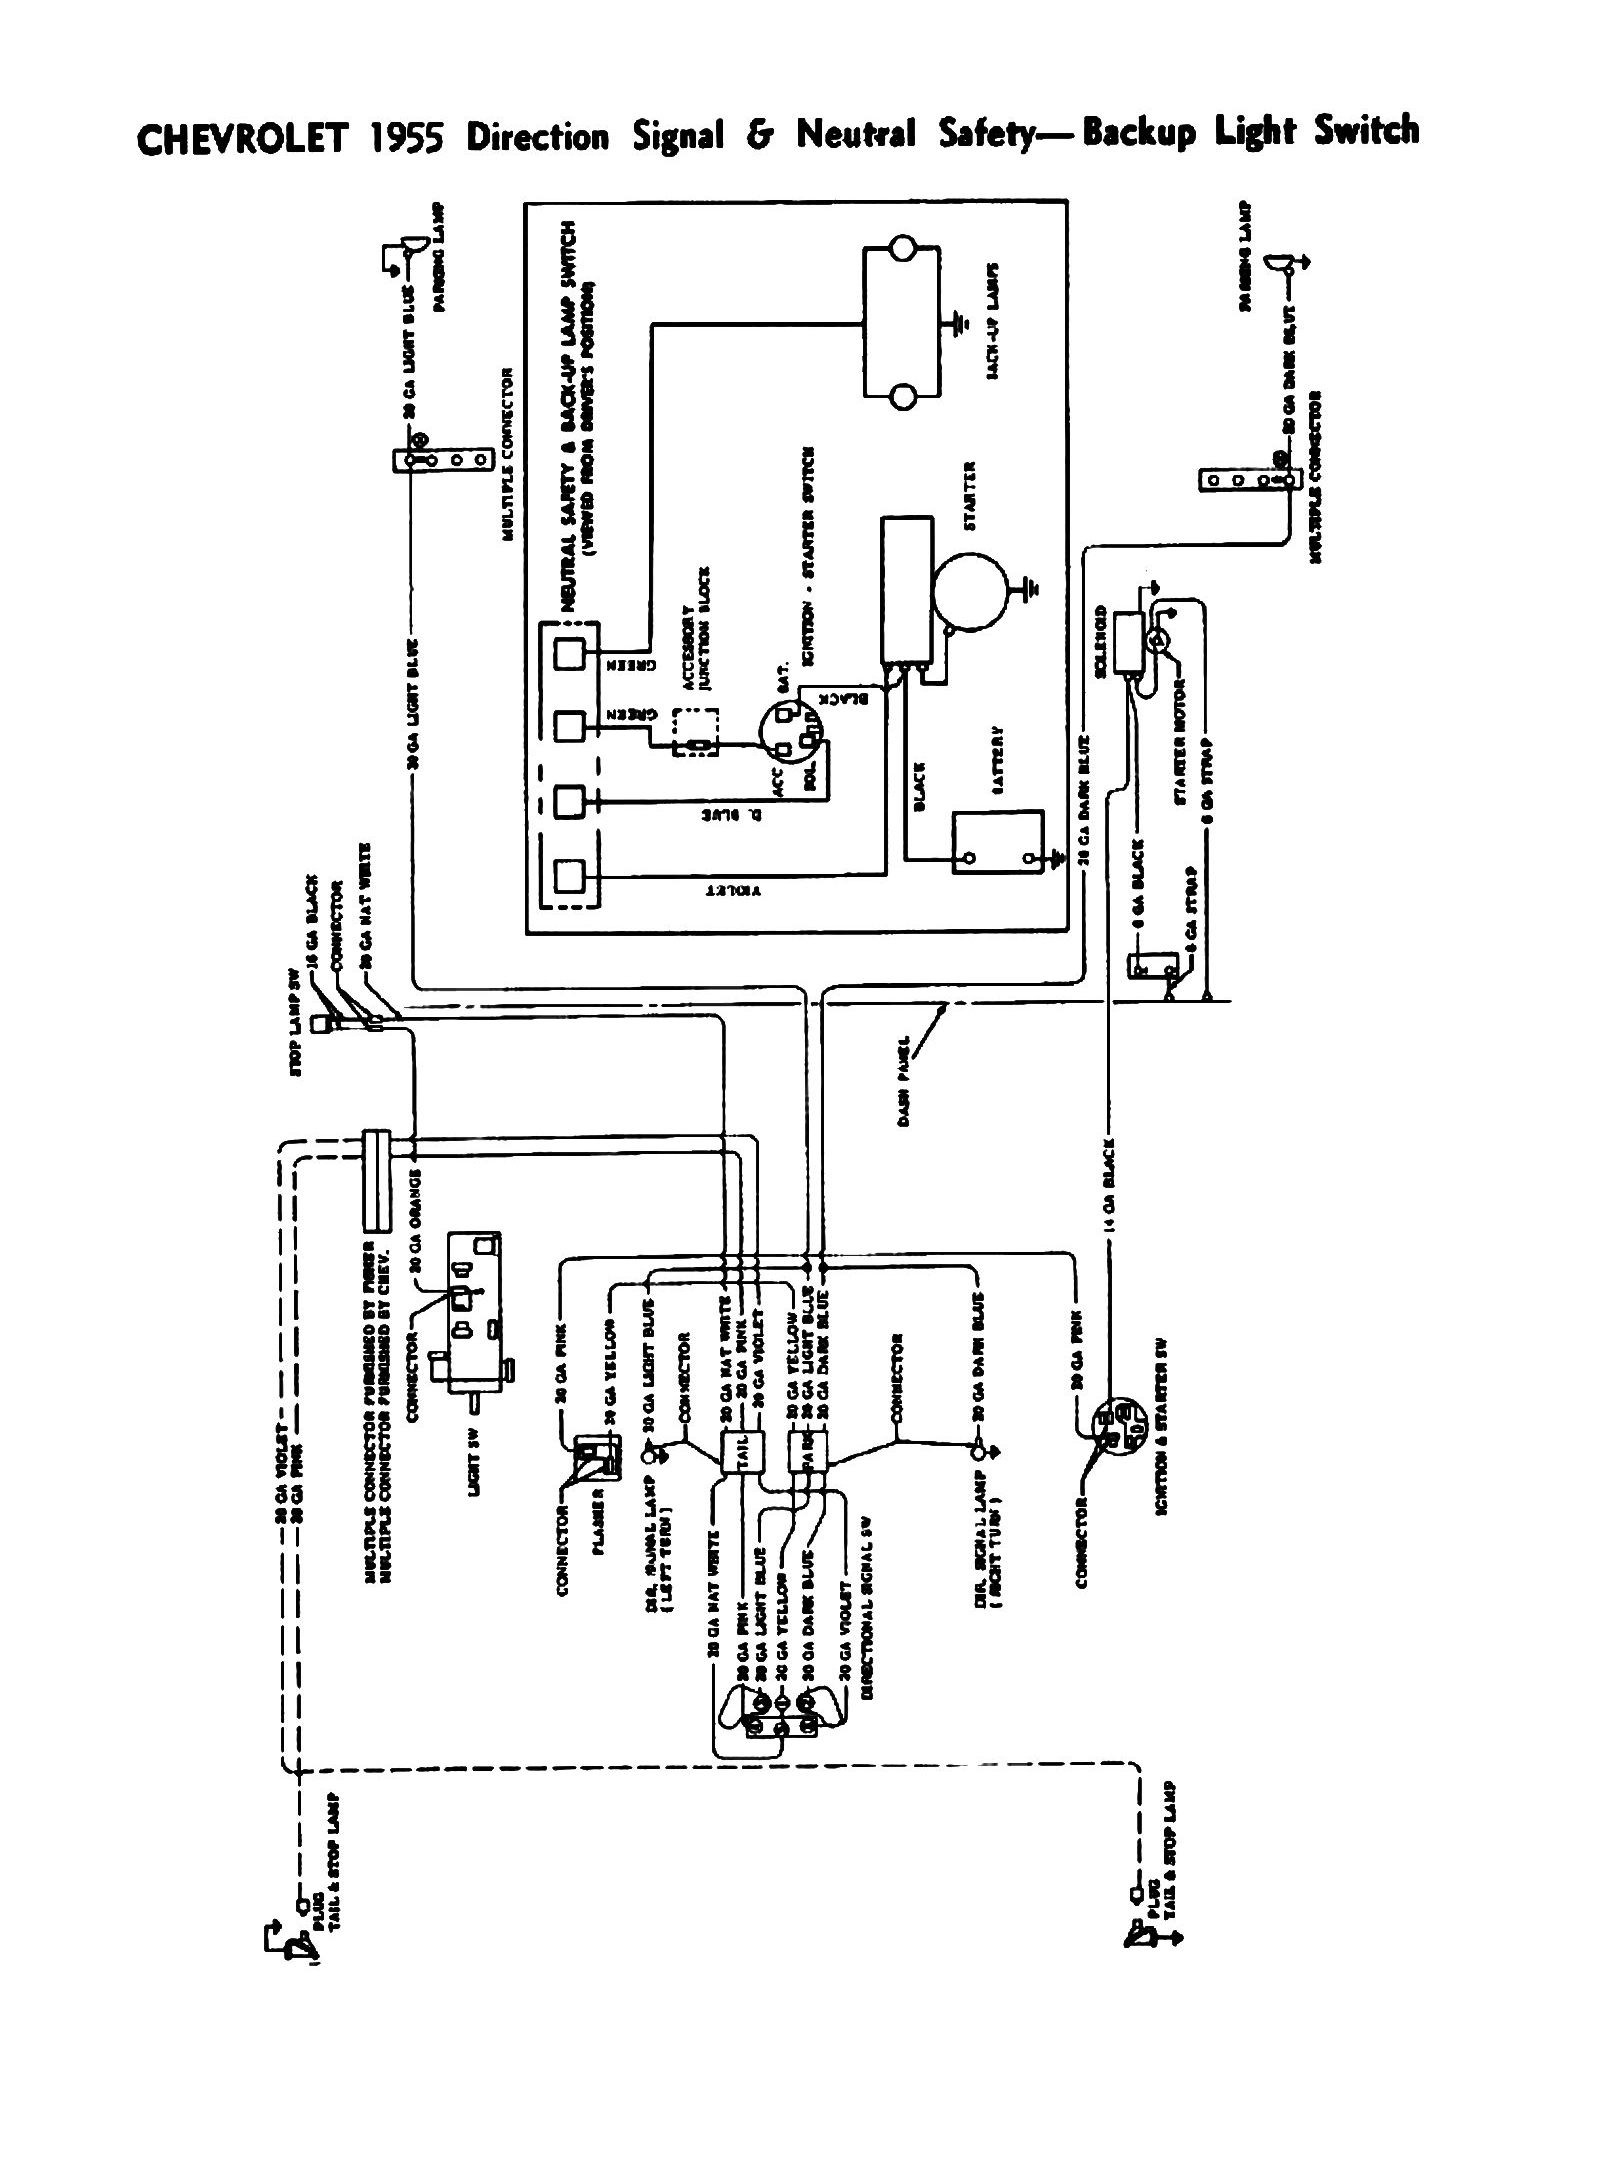 2007 Chevy Uplander Fuse Box - Cars Wiring Diagram